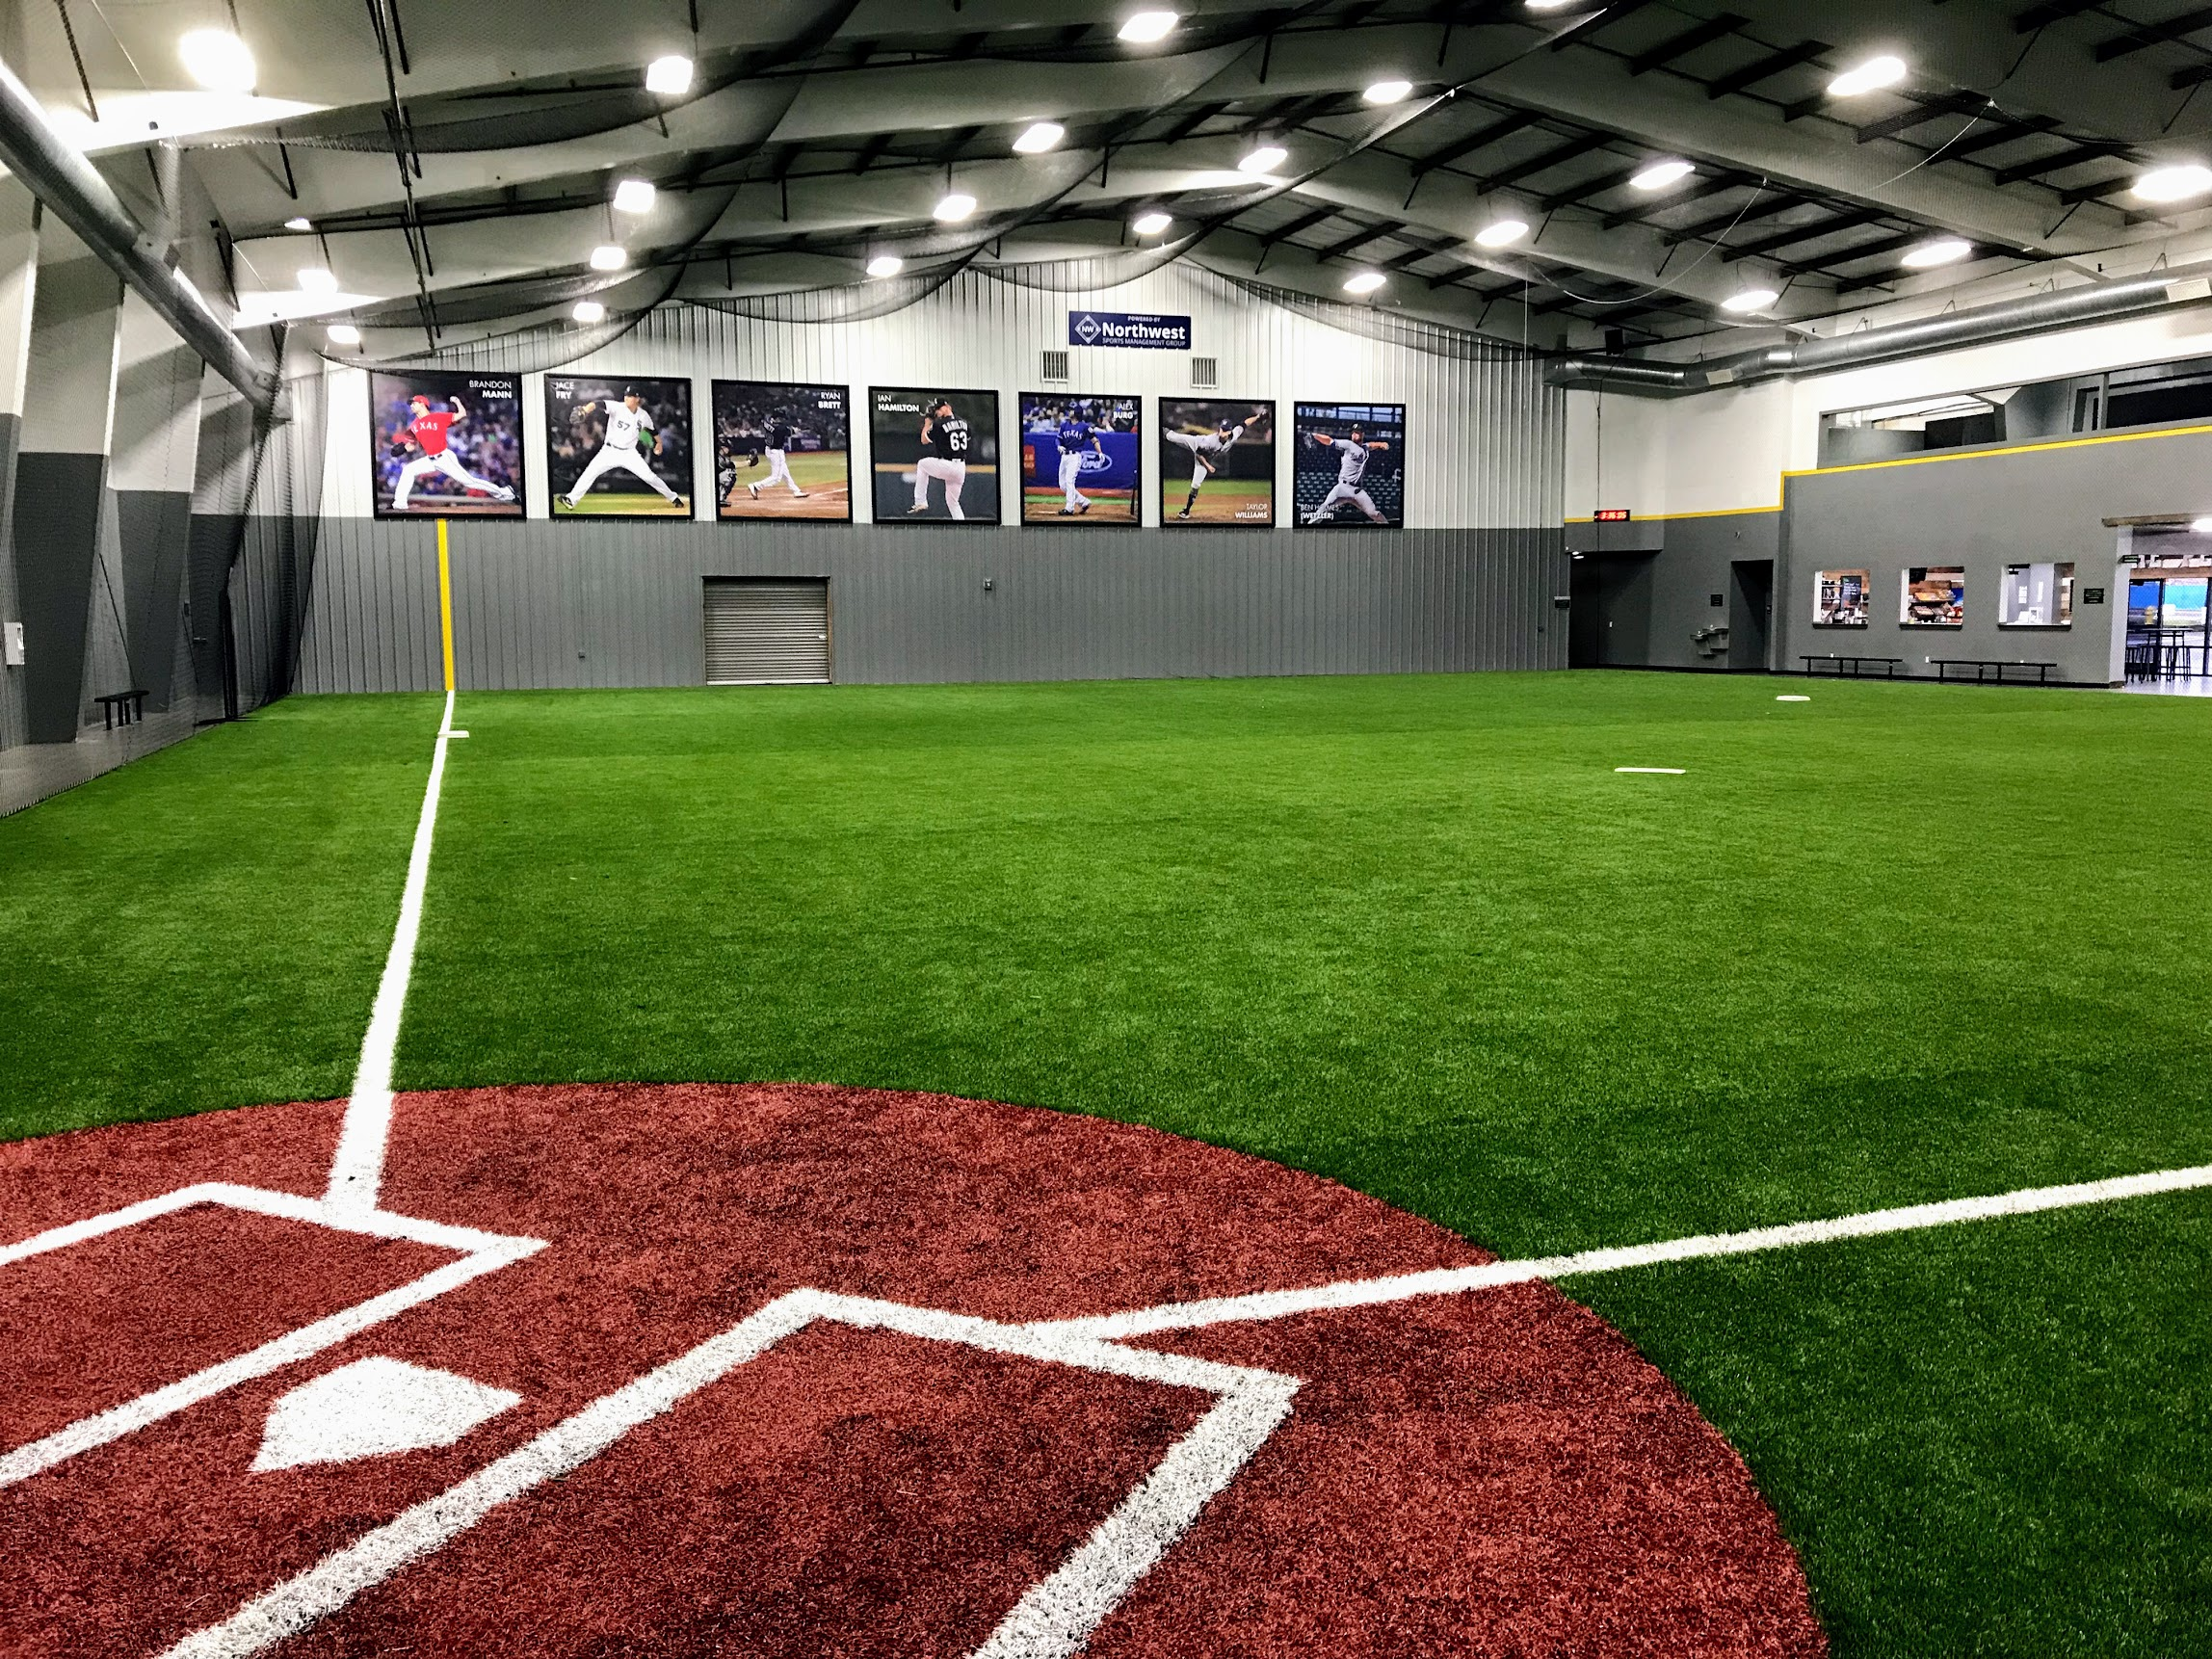 NW Athletic Center Arena